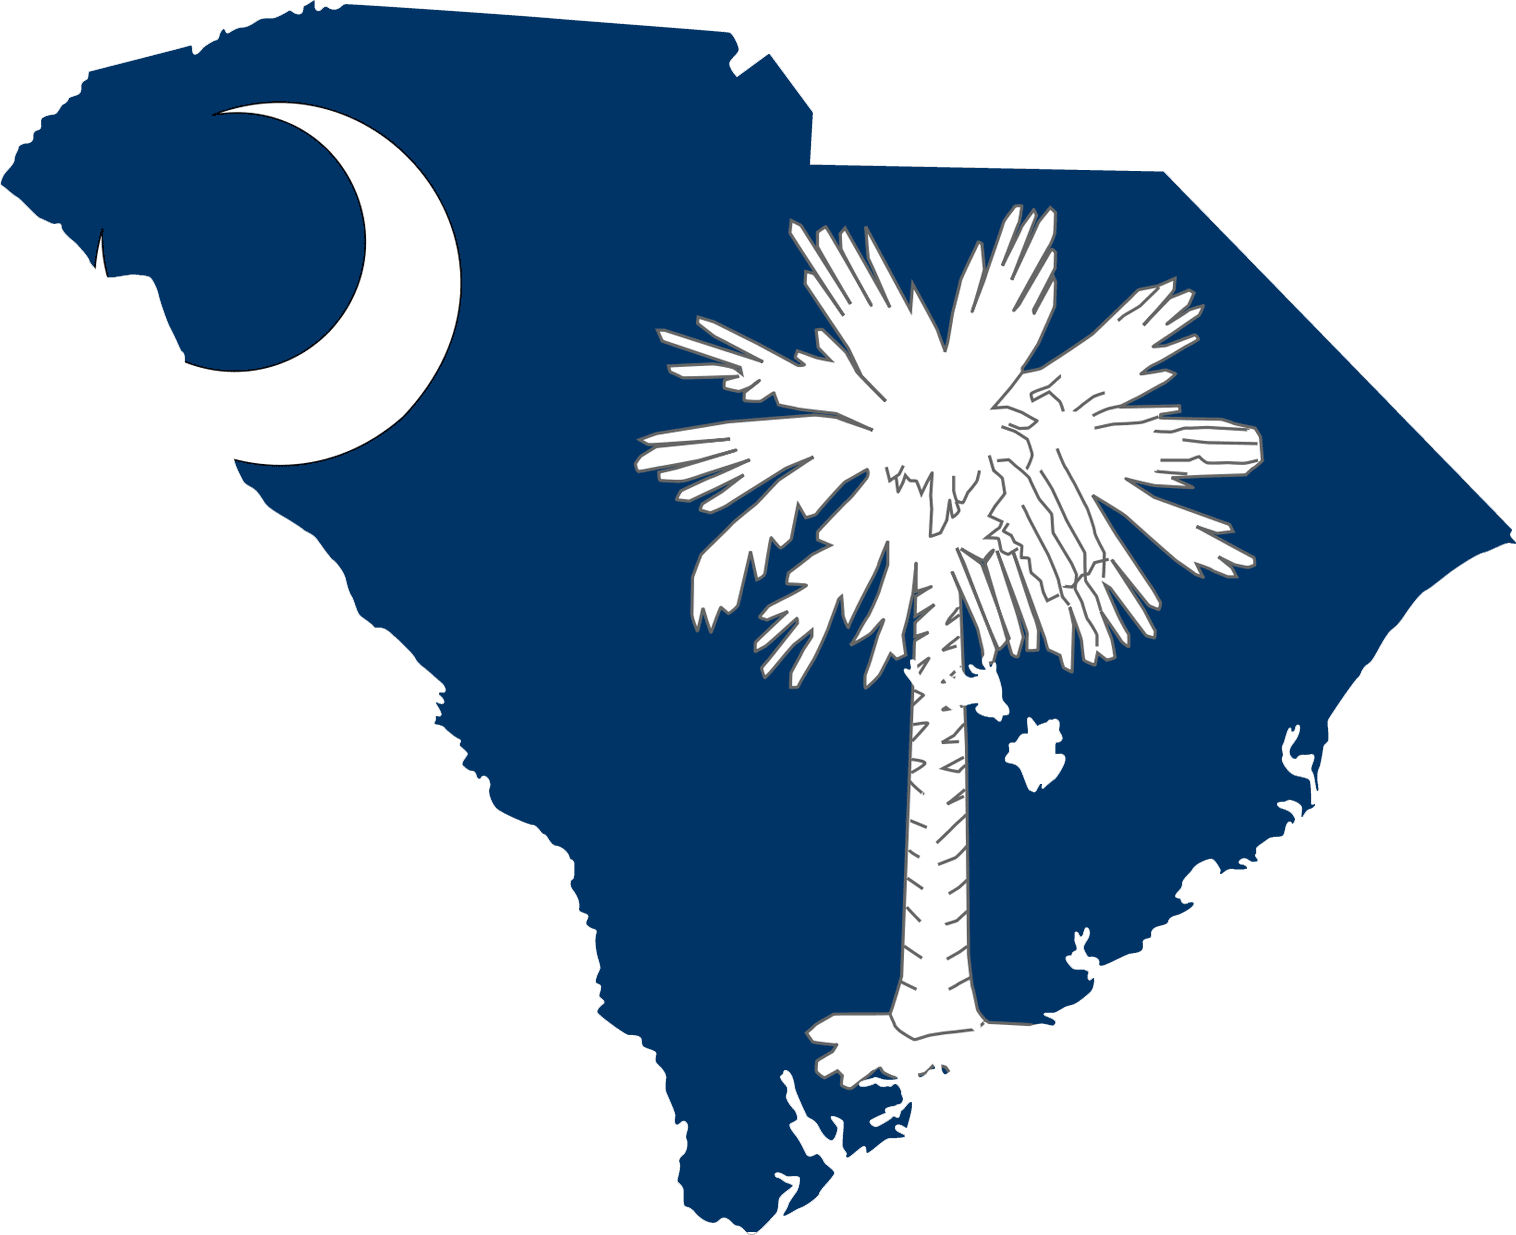 South Carolina Flag Map  Mapsof